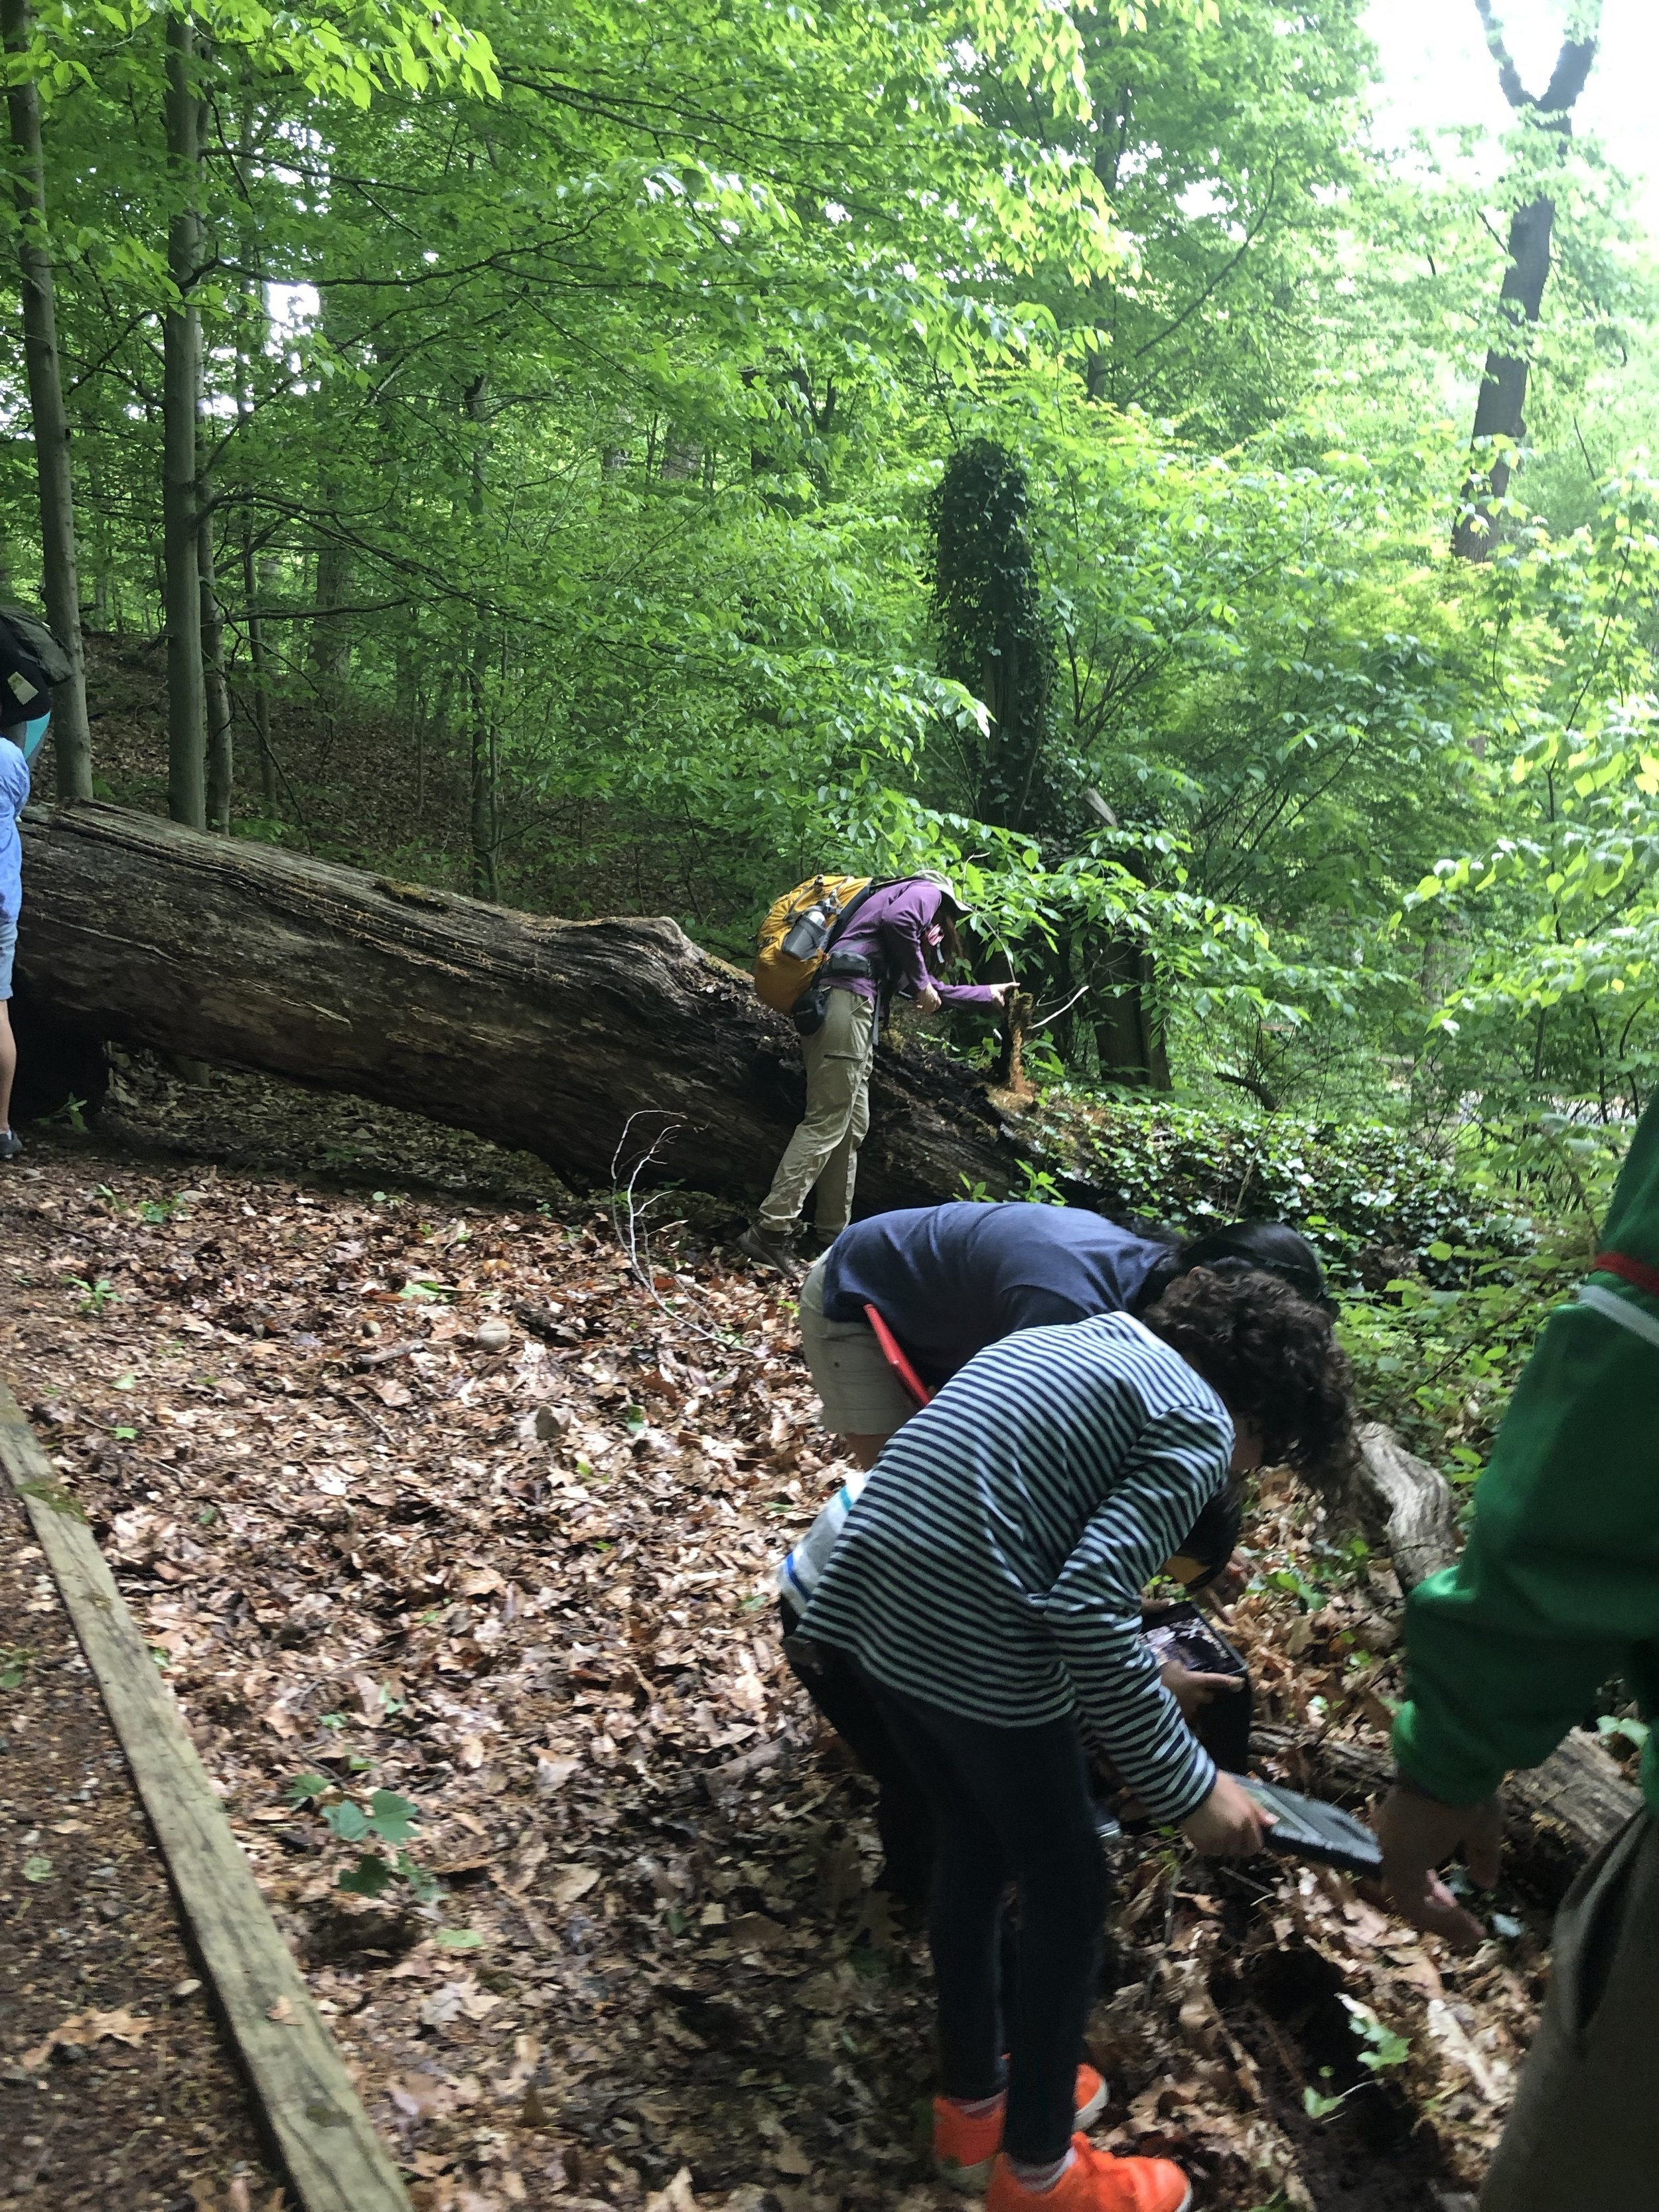 Citizen scientists exploring, documenting, and enjoying the forest.